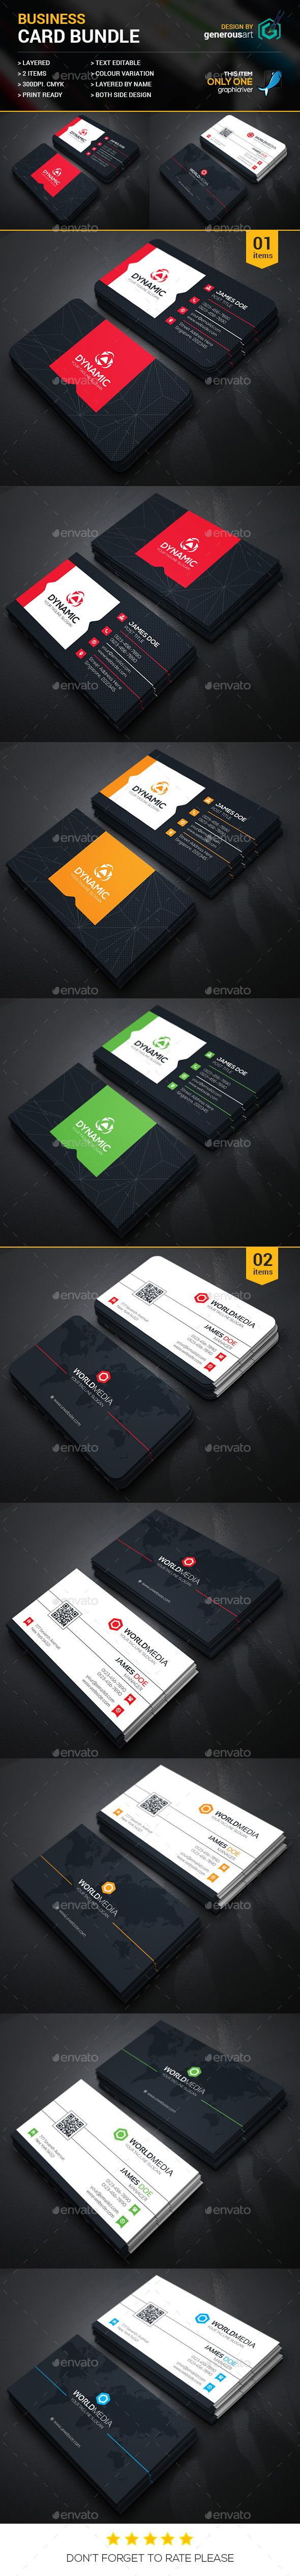 Business card eps template bundle 2 in 1 design download http business card eps template bundle 2 in 1 design download http friedricerecipe Image collections